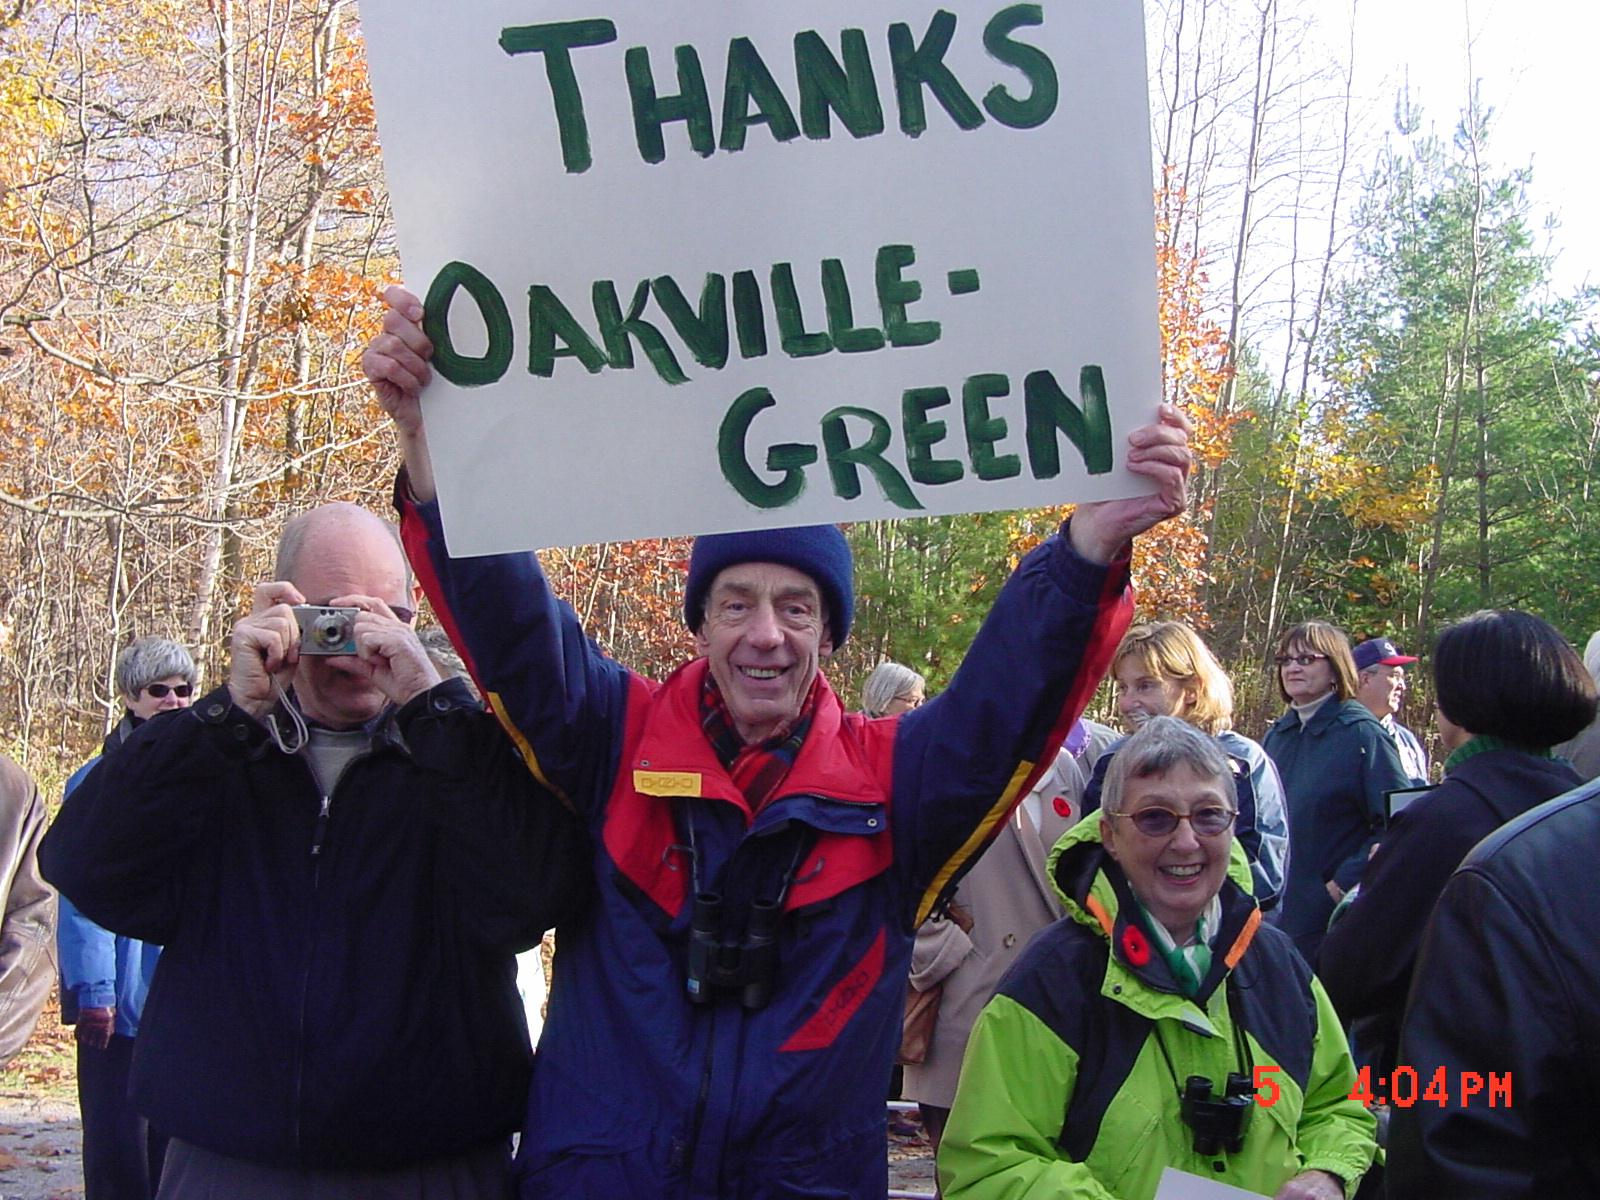 orc-presentation-thanks-oakvillegreen-1